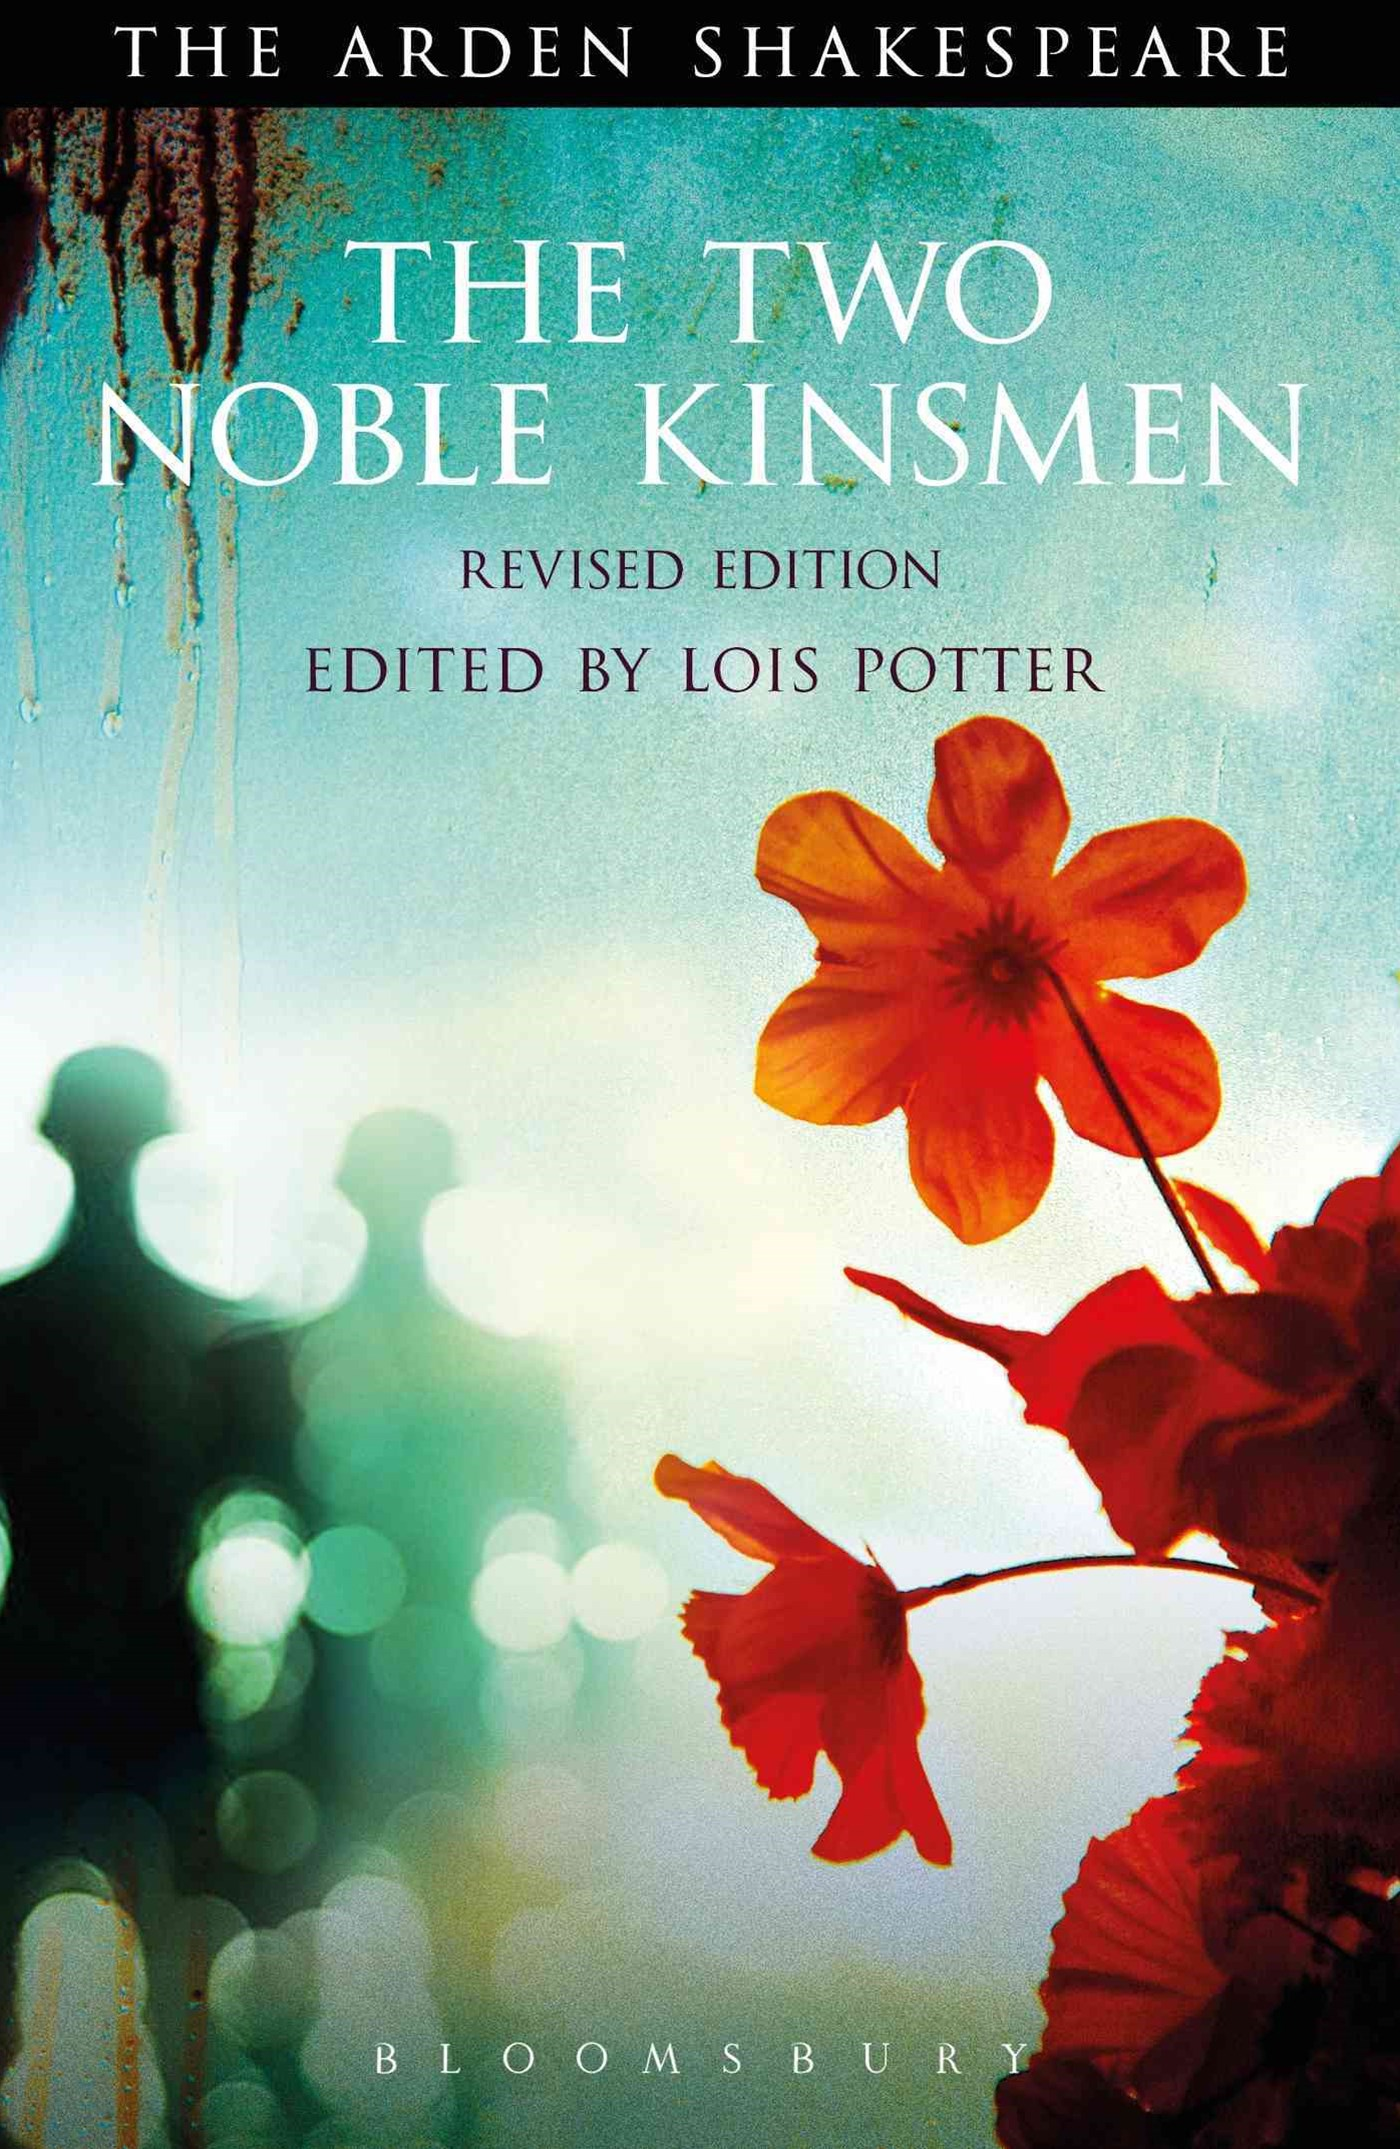 The Two Noble Kinsmen, Revised Edition